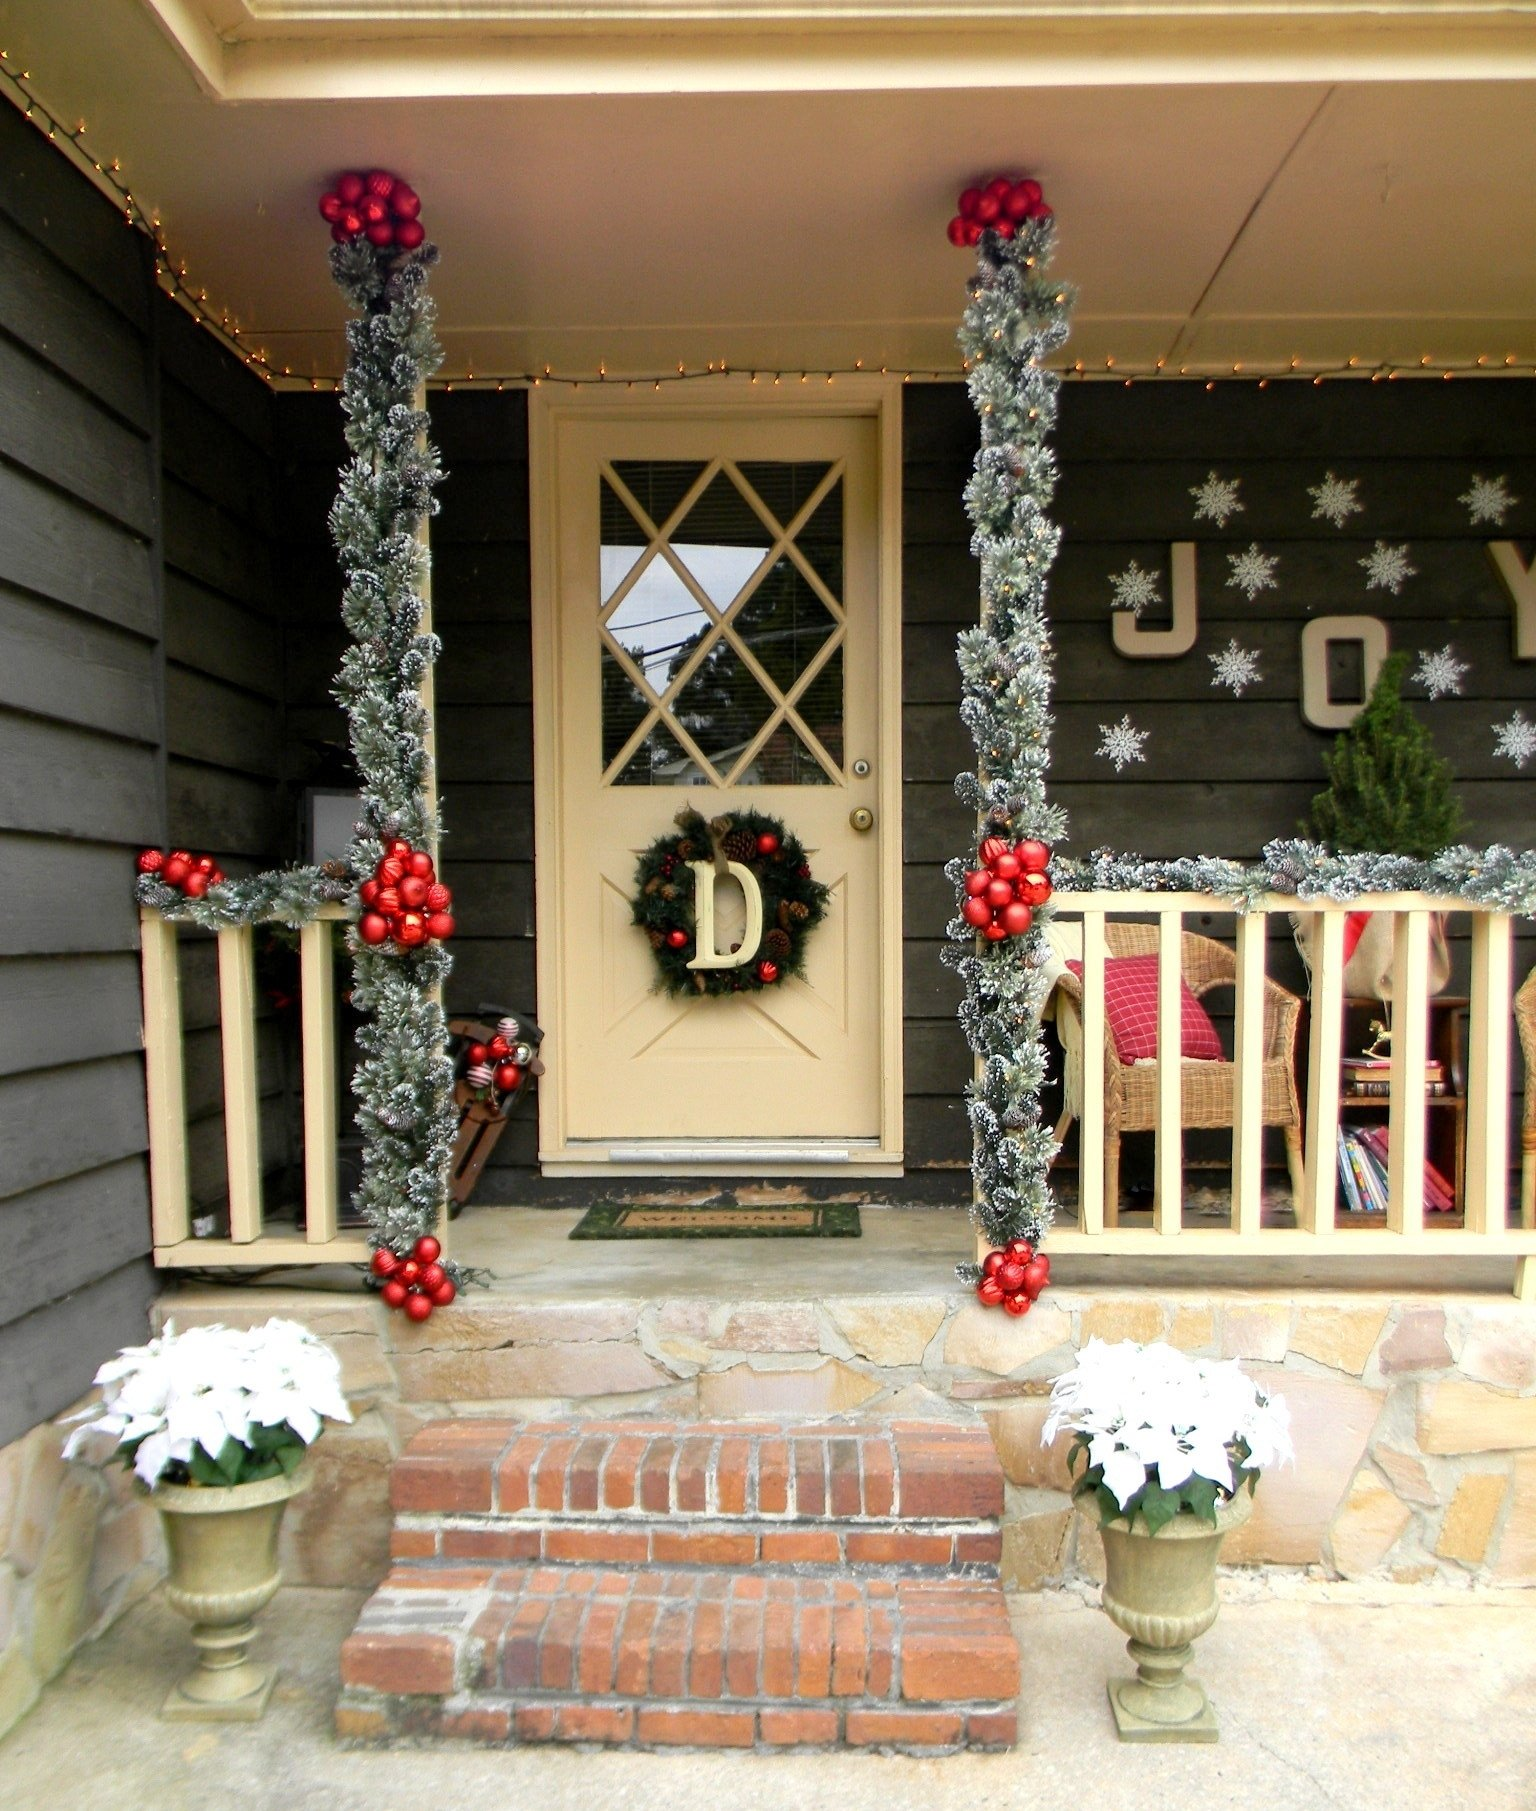 10 Lovable Christmas Front Porch Decorating Ideas front porch christmas decorating ideas country christmas 1 2020